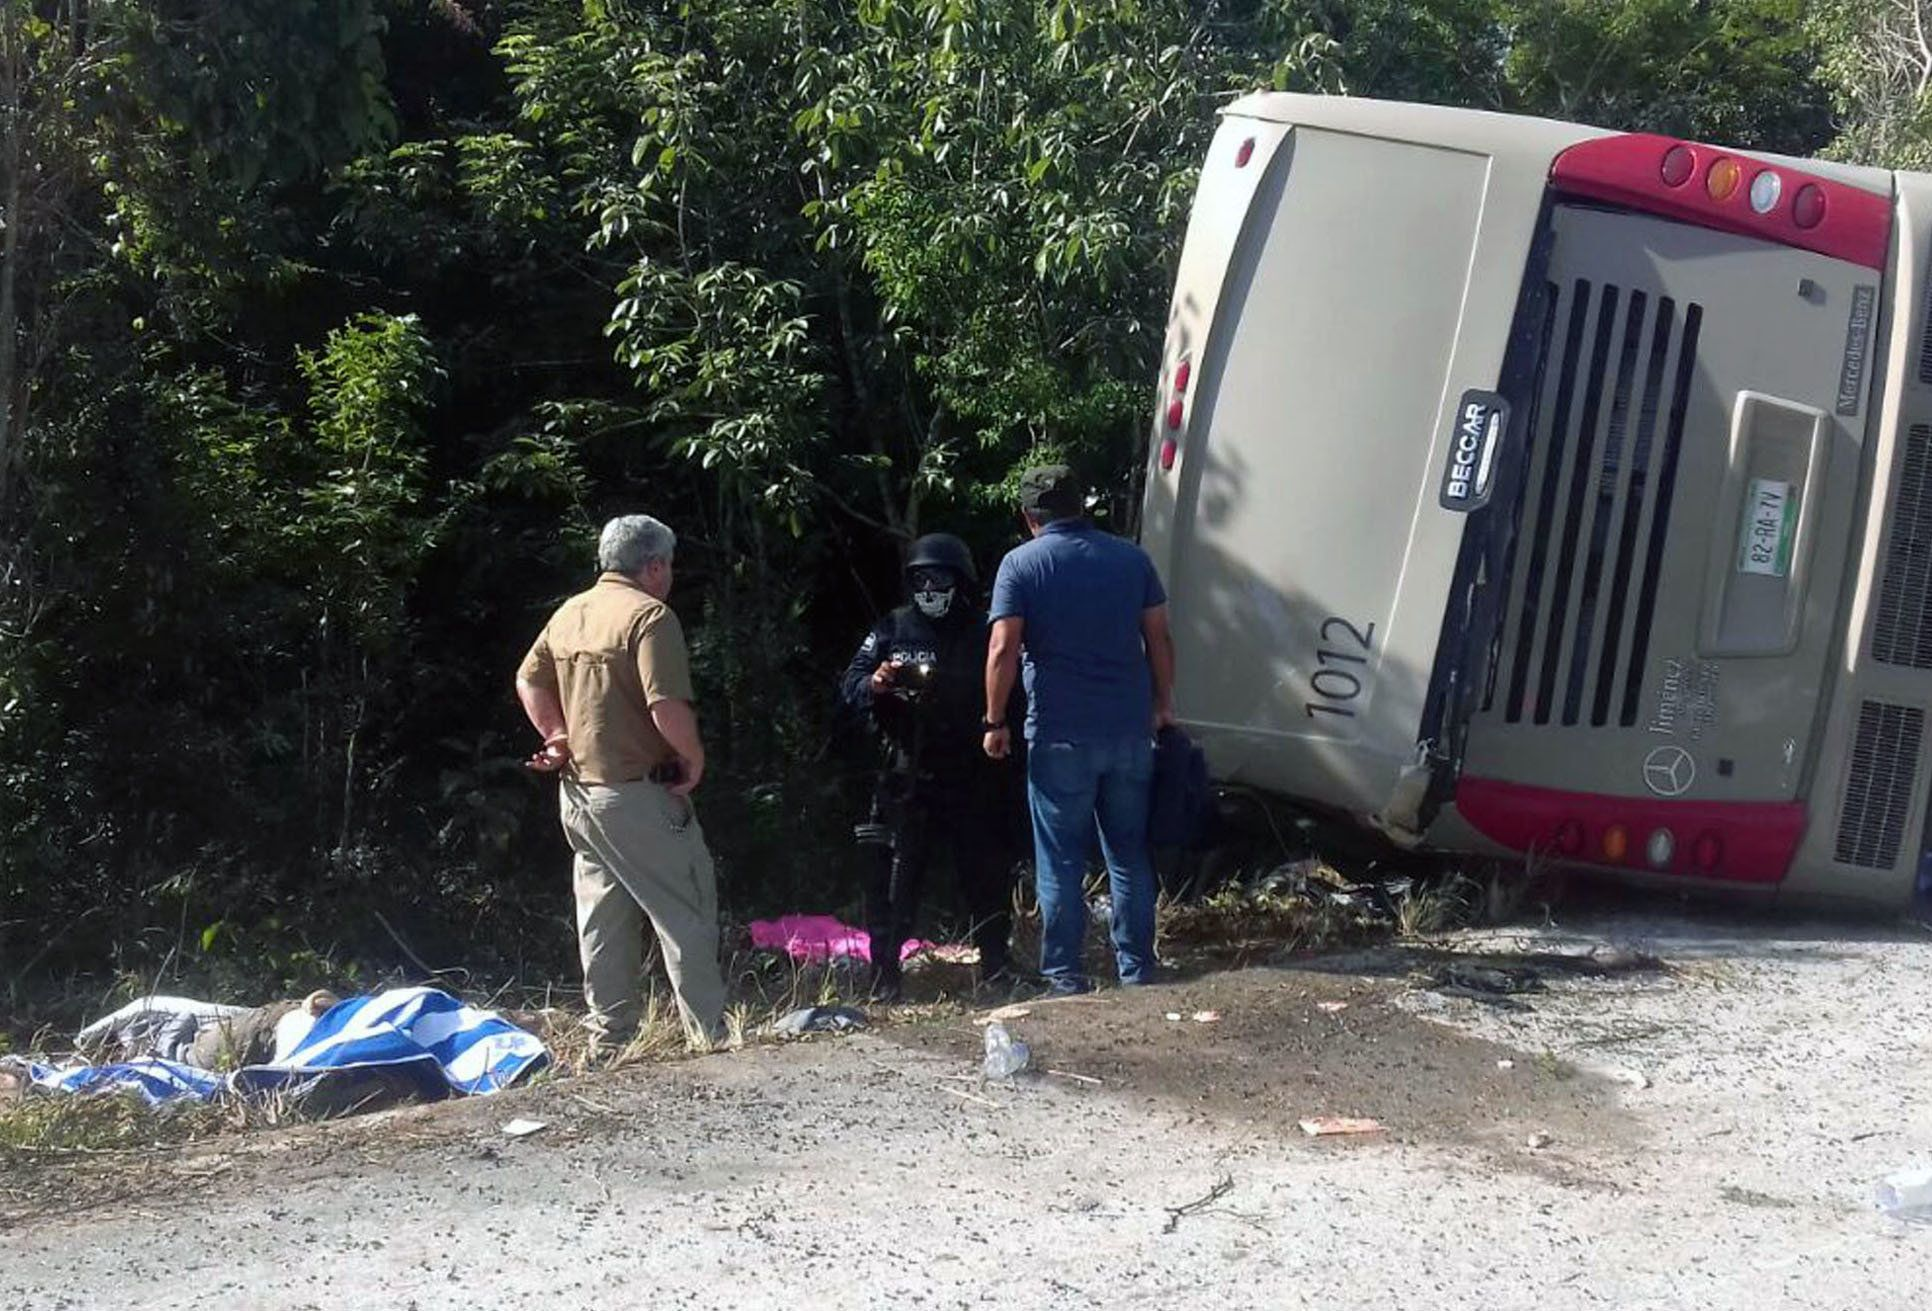 Mexican police officers and paramedics work in the scene of a road accident, where a bus driving tourists to Chacchoben archaeological zone overturned between El Cafetal and Mahahual, in Quintana Roo state, Mexico on December 19, 2017. At least eleven tourists who arrived in the Mexican Caribbean on a US cruise ship were killed and another 20 injured in a road accident on Tuesday when they were heading to an archaeological zone, the Quintana Roo state government reported. / AFP PHOTO / Manuel Jesús ORTEGA CANCHE        (Photo credit should read MANUEL JESUS ORTEGA CANCHE/AFP/Getty Images)